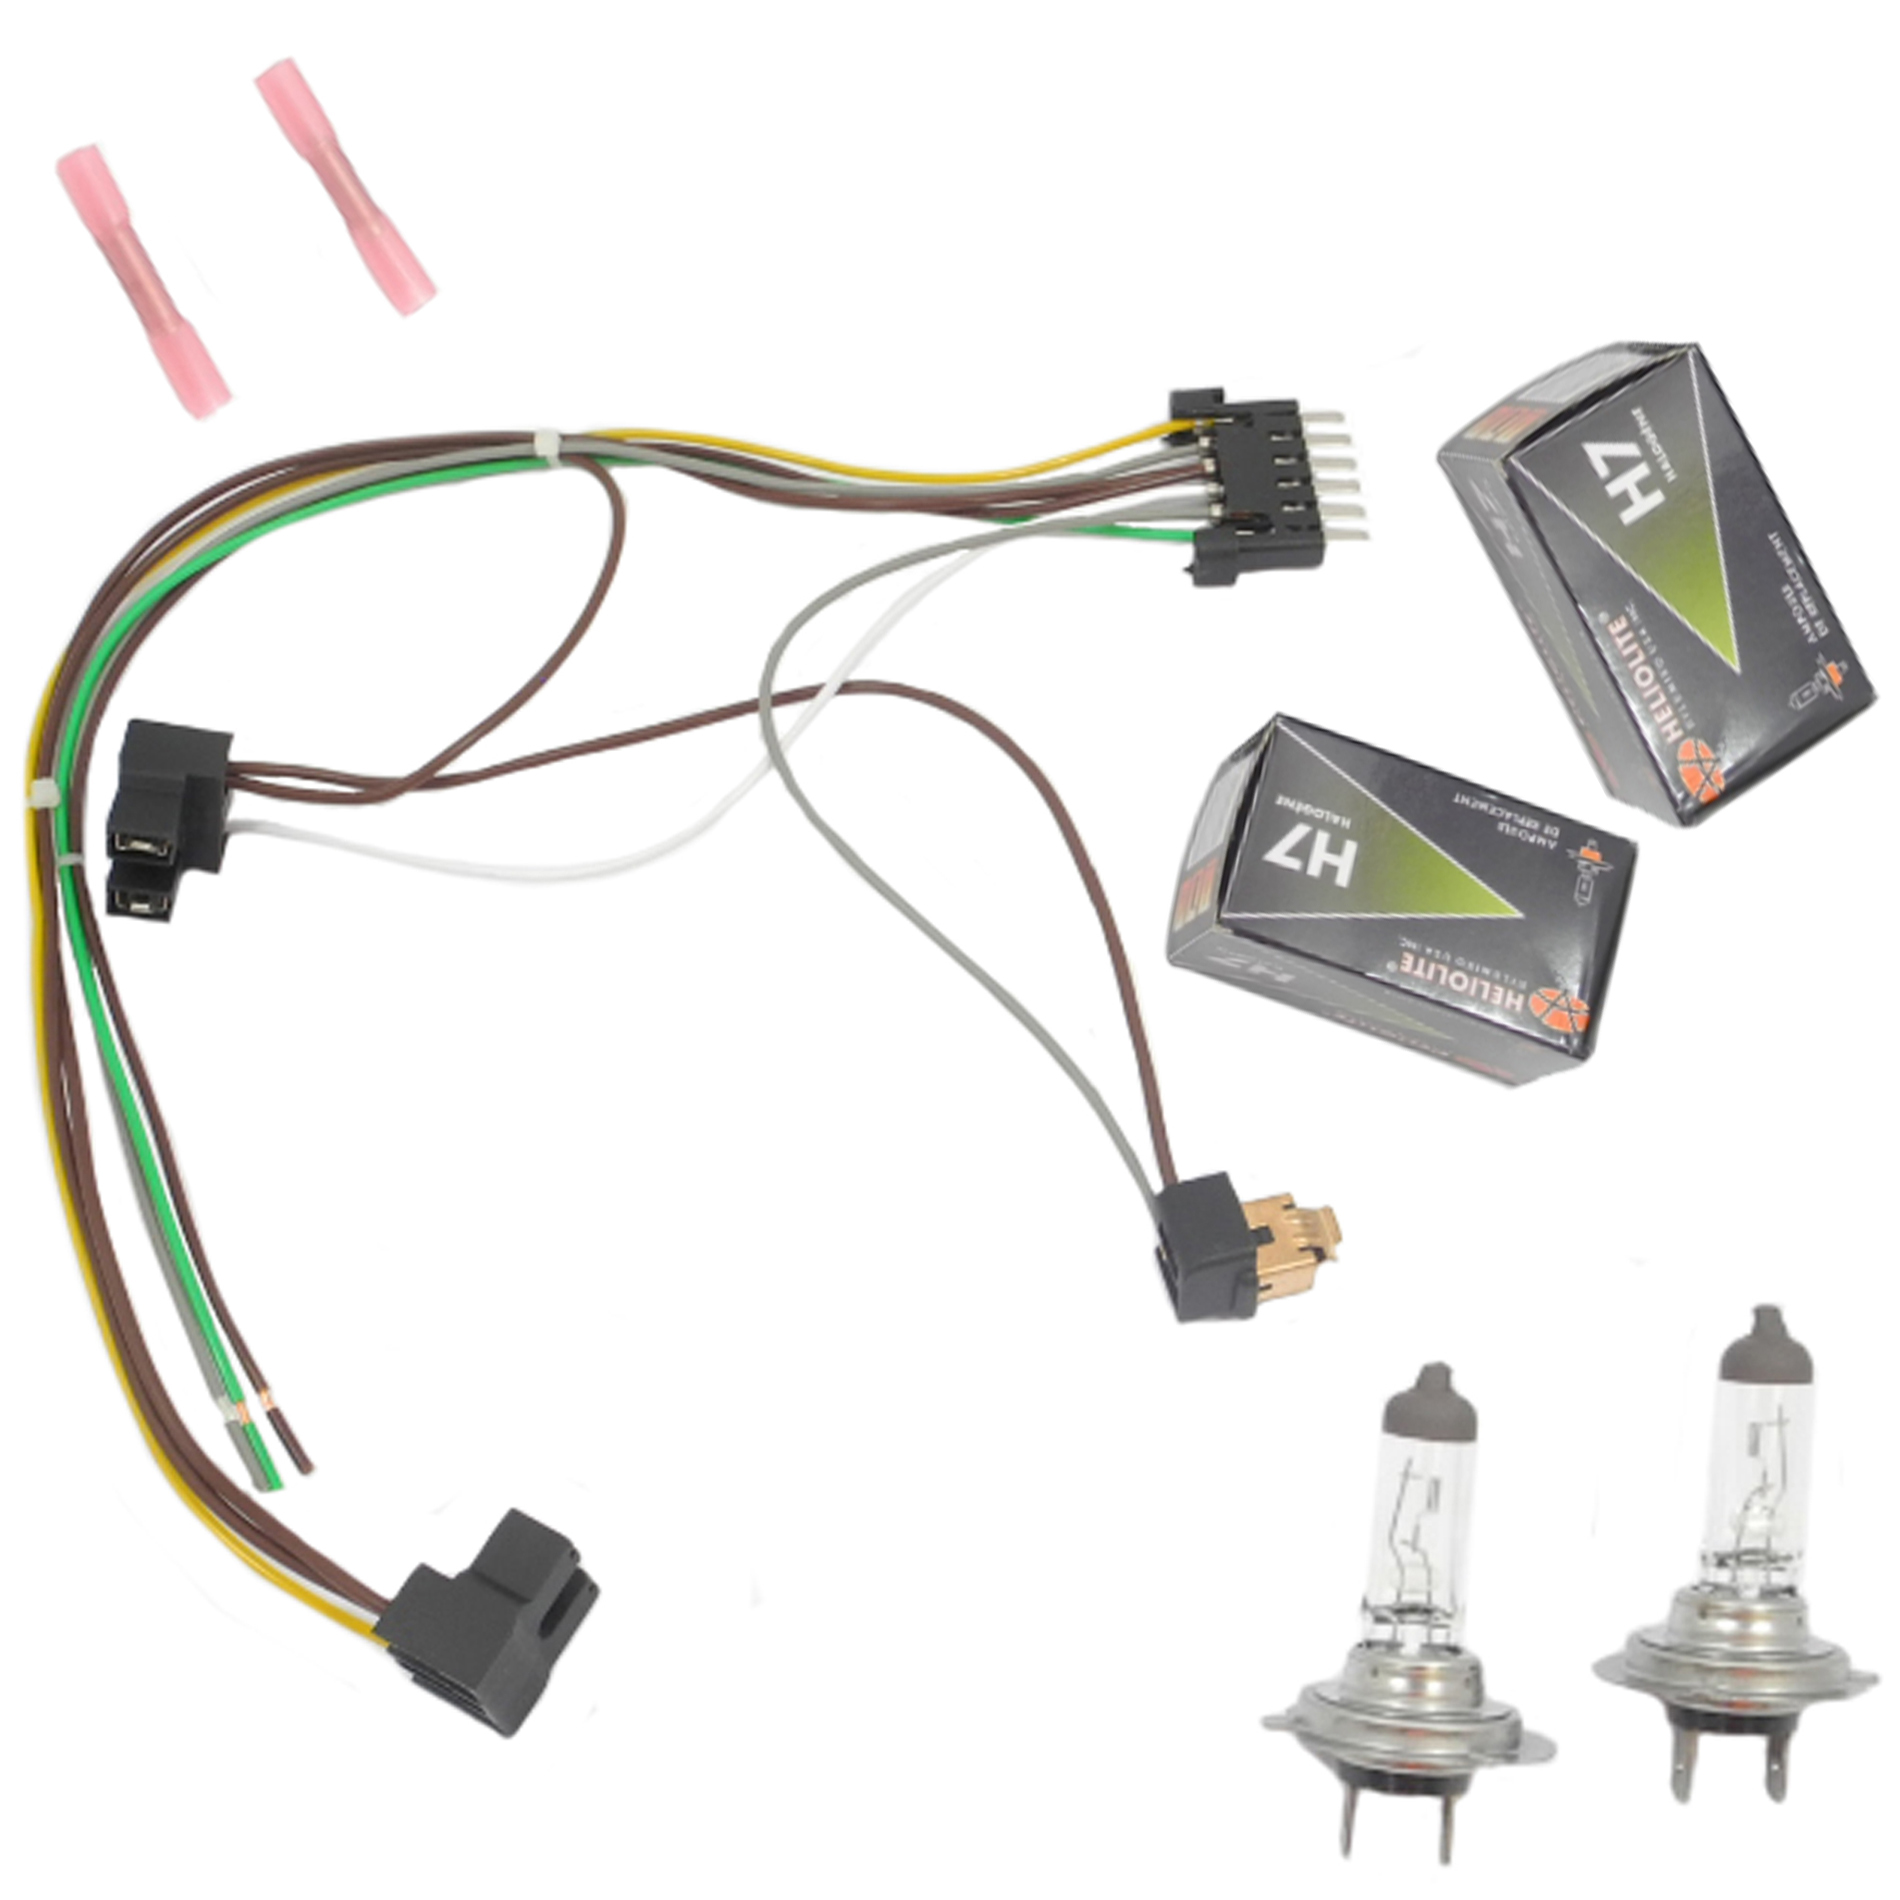 cf advance for 00 02 mercedes benz s430 s500 s500 amg s600 left or right headlight wiring harness and h7 55w headlight bulb 2000 2001 2002 Wire Harness Tape